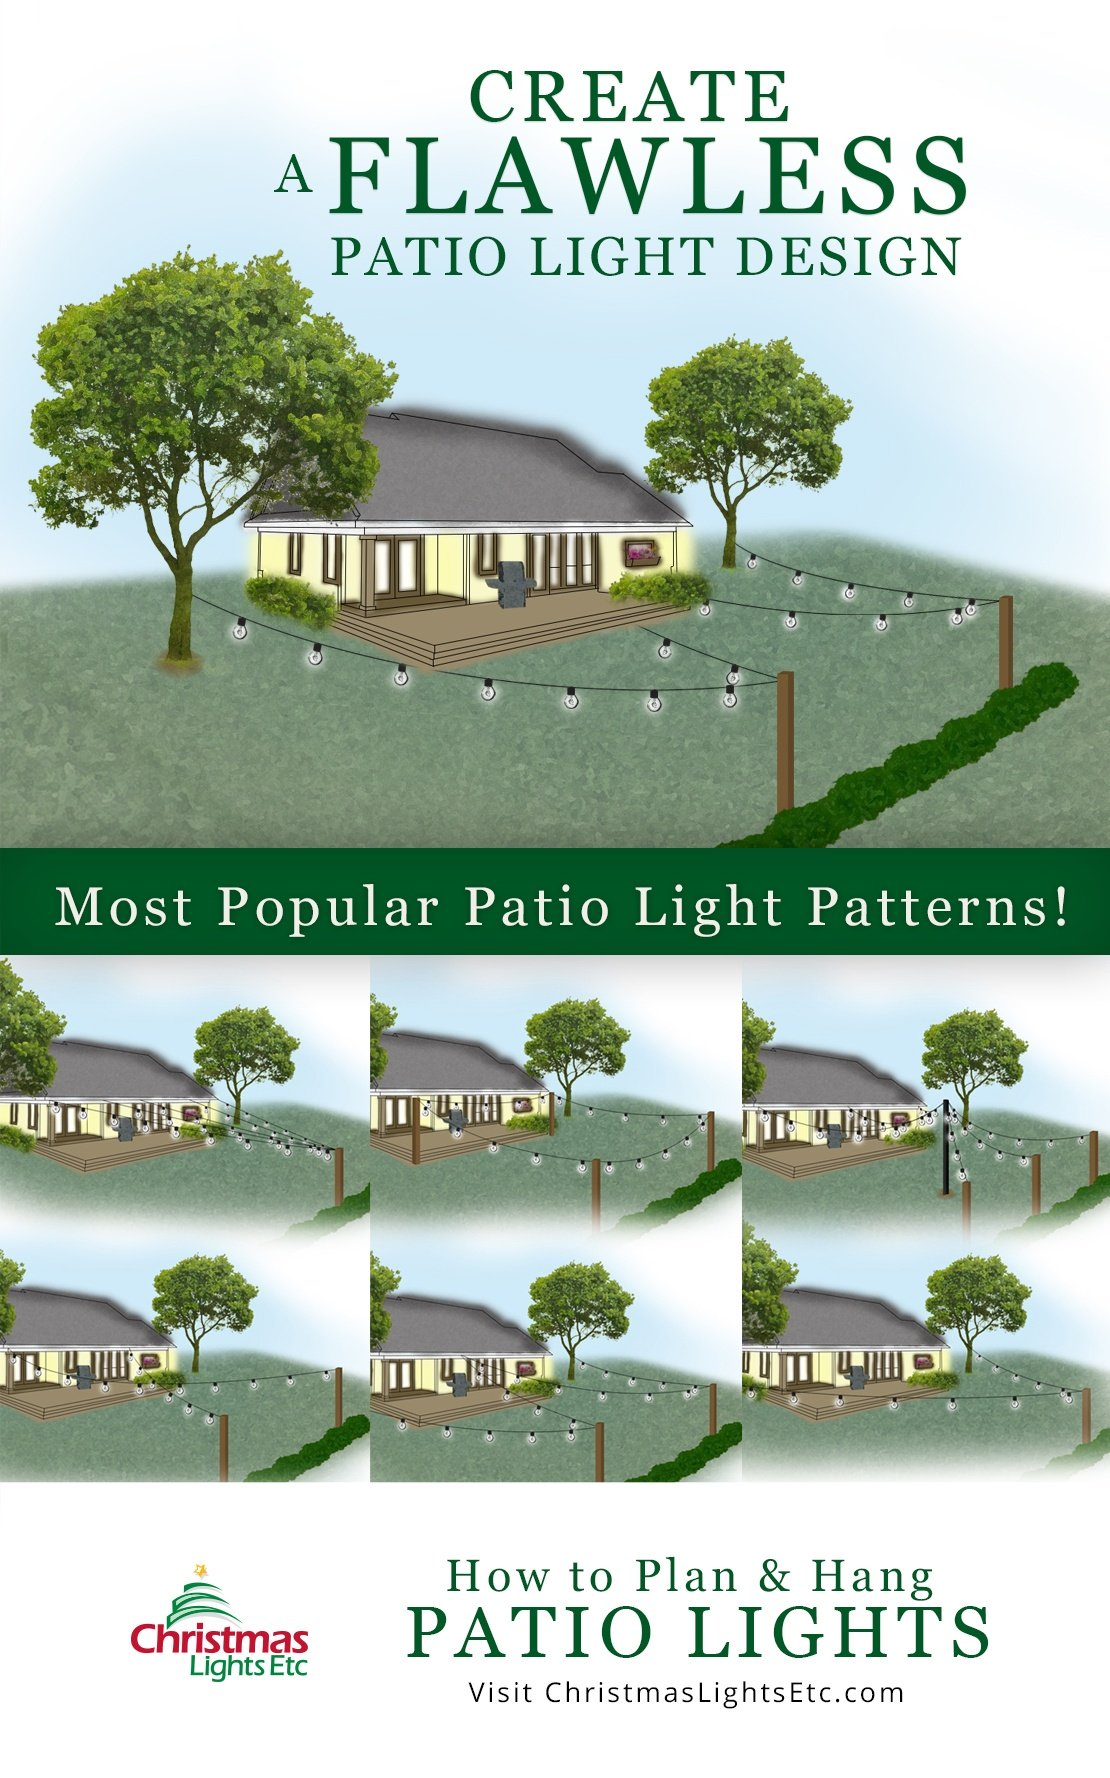 Patio Light Patterns ss how to plan and hang patio lights  at bayanpartner.co